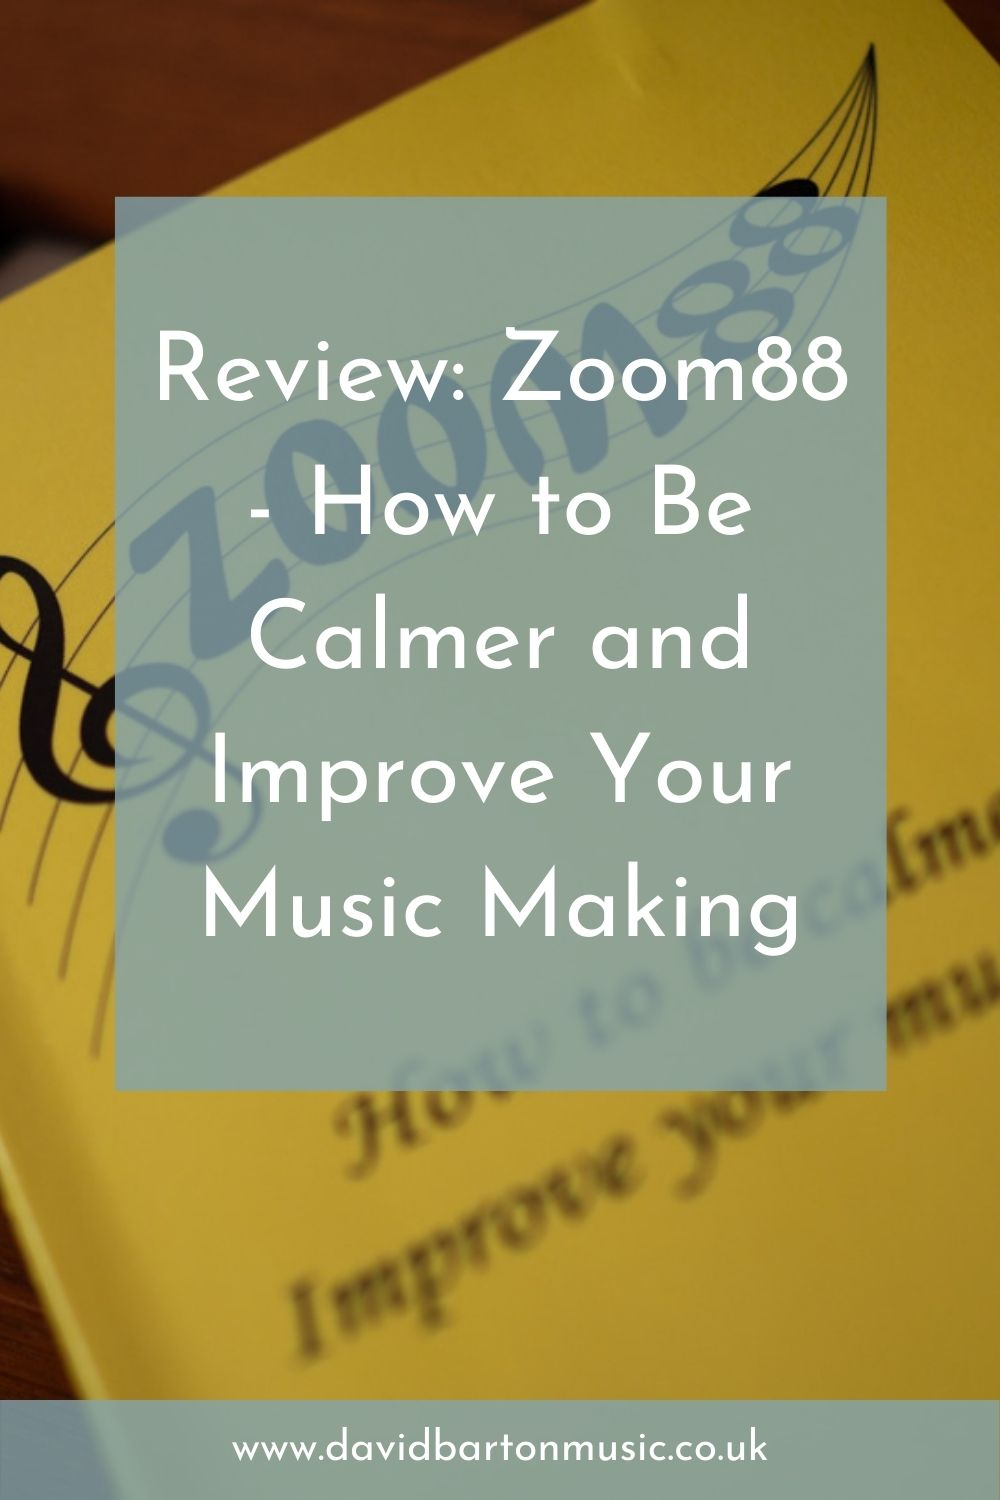 Review: Zoom 88 - How to Be Calmer and Improve Your Music Making - Pinterest Graphic